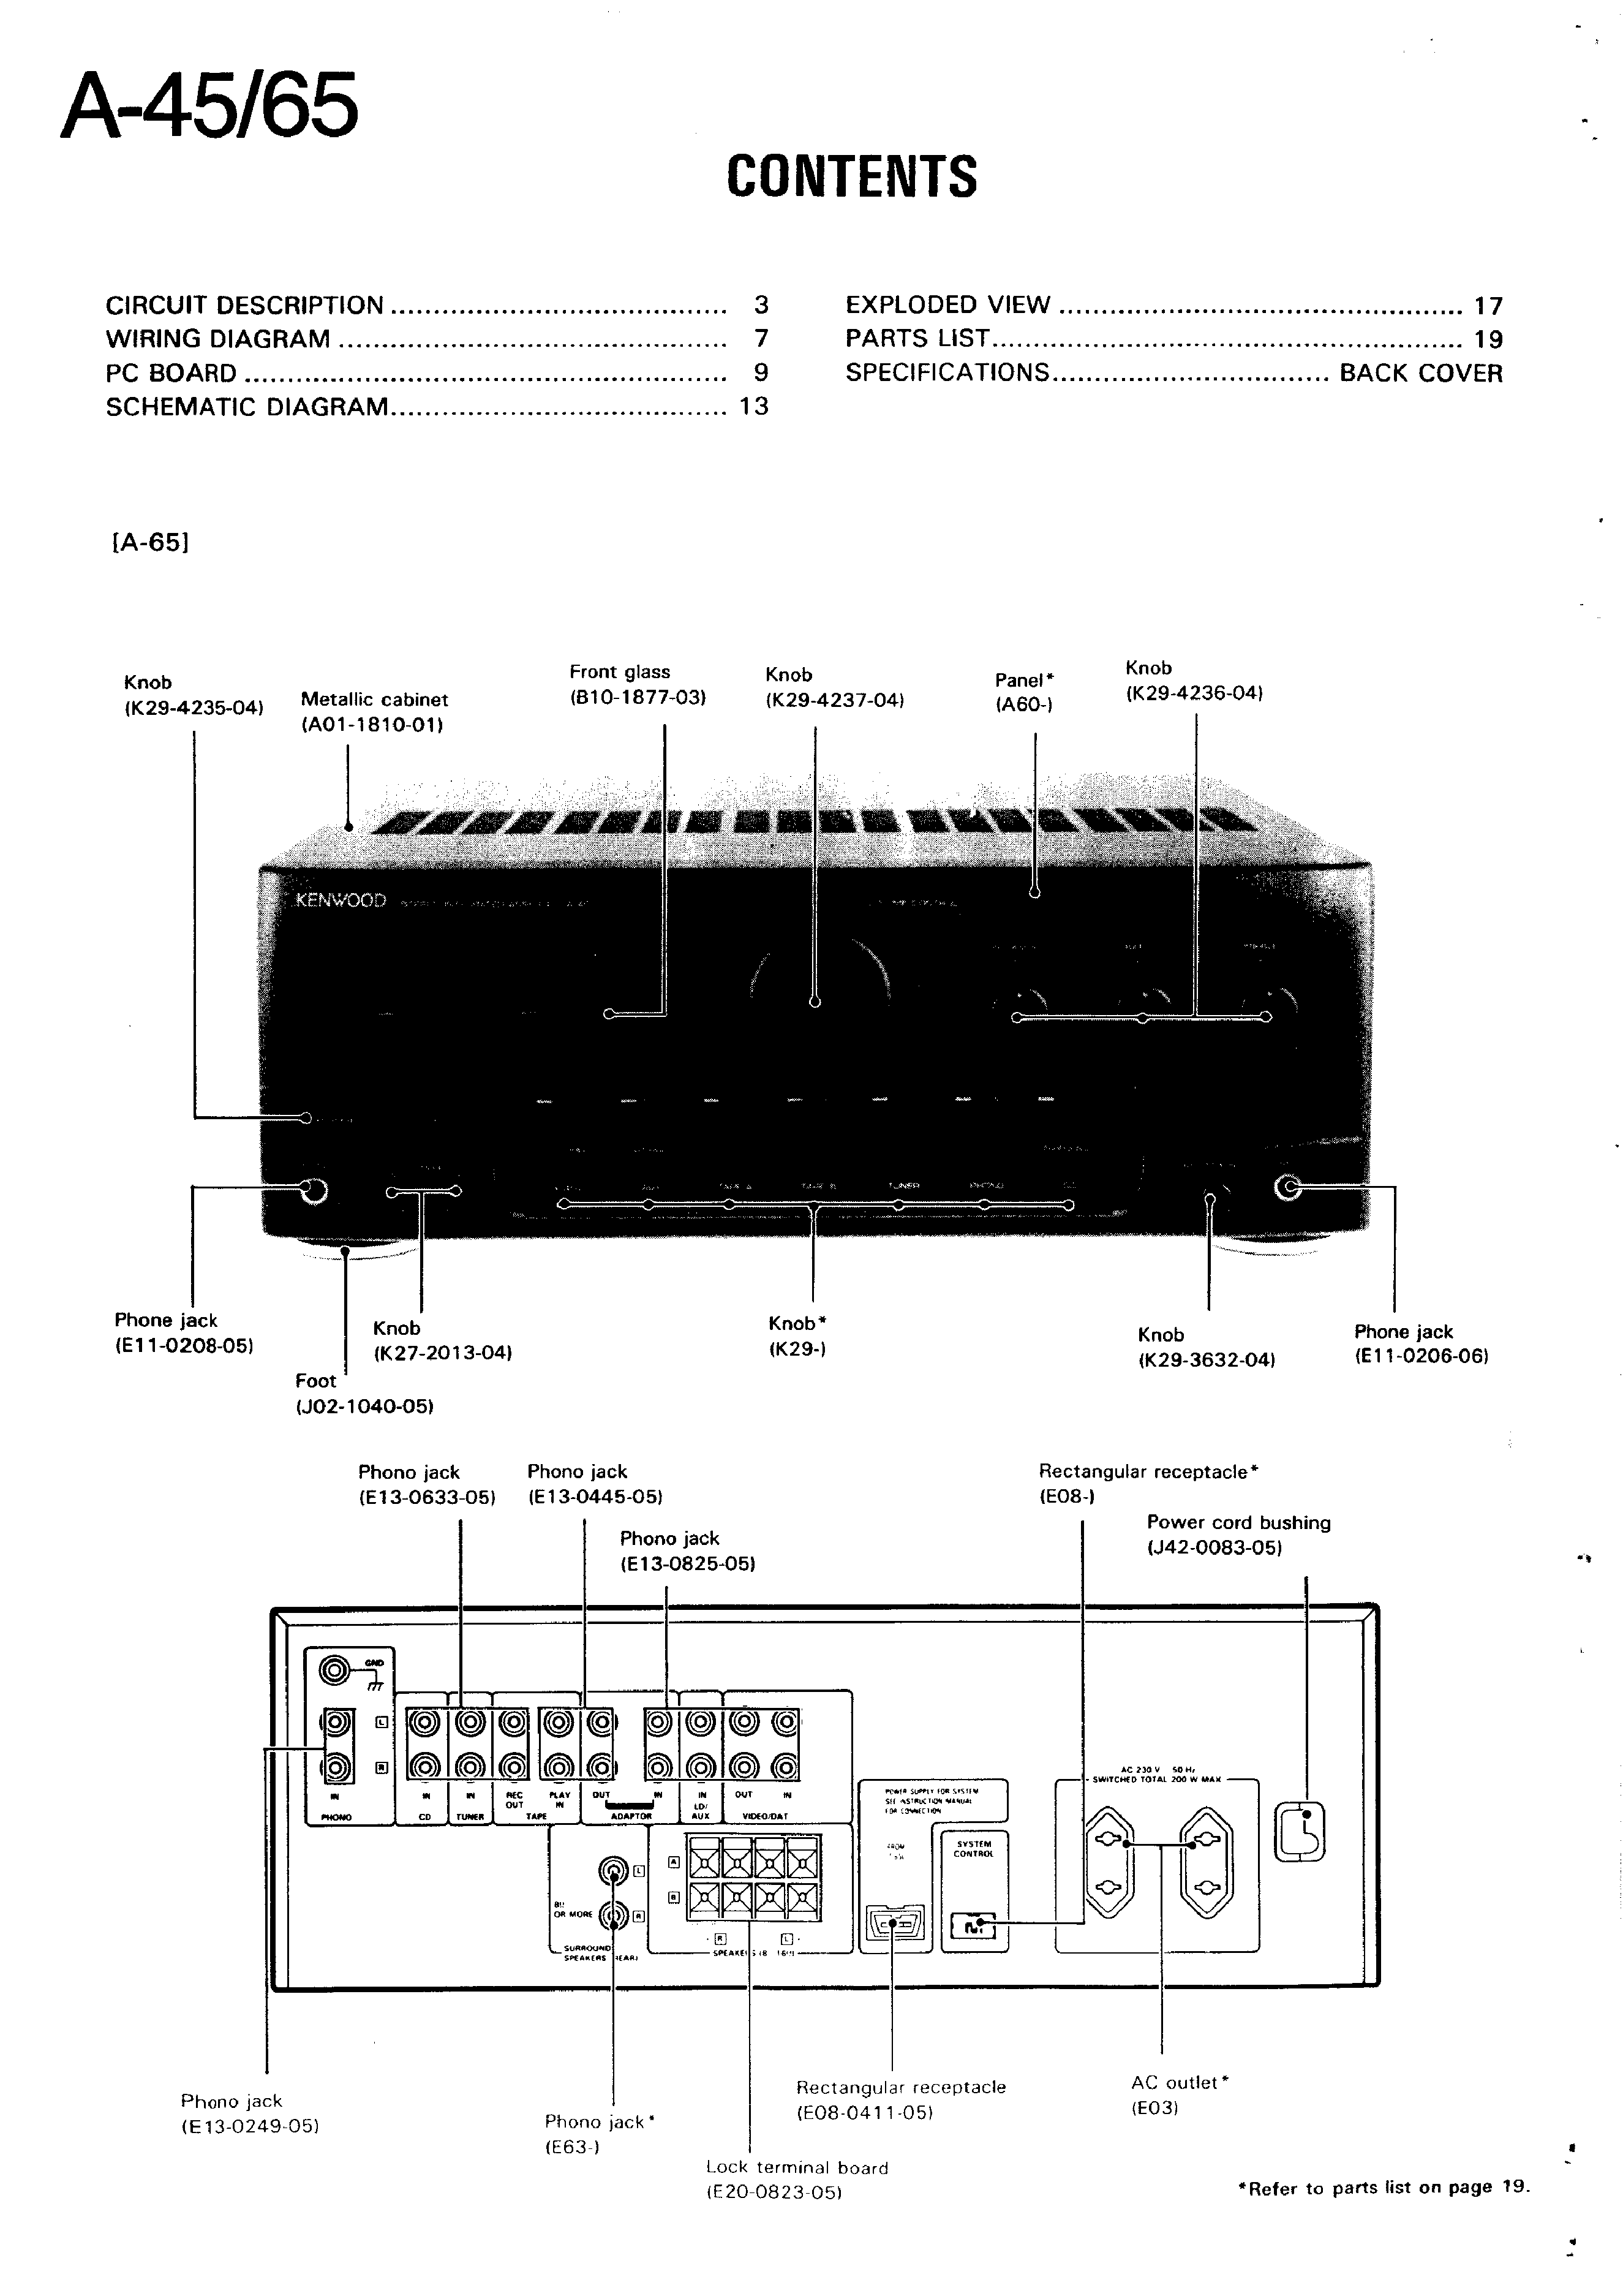 Kenwood A65 Amplifier Circuit Diagram Wiring And Parts List A 45 Service Manual Immediate Download